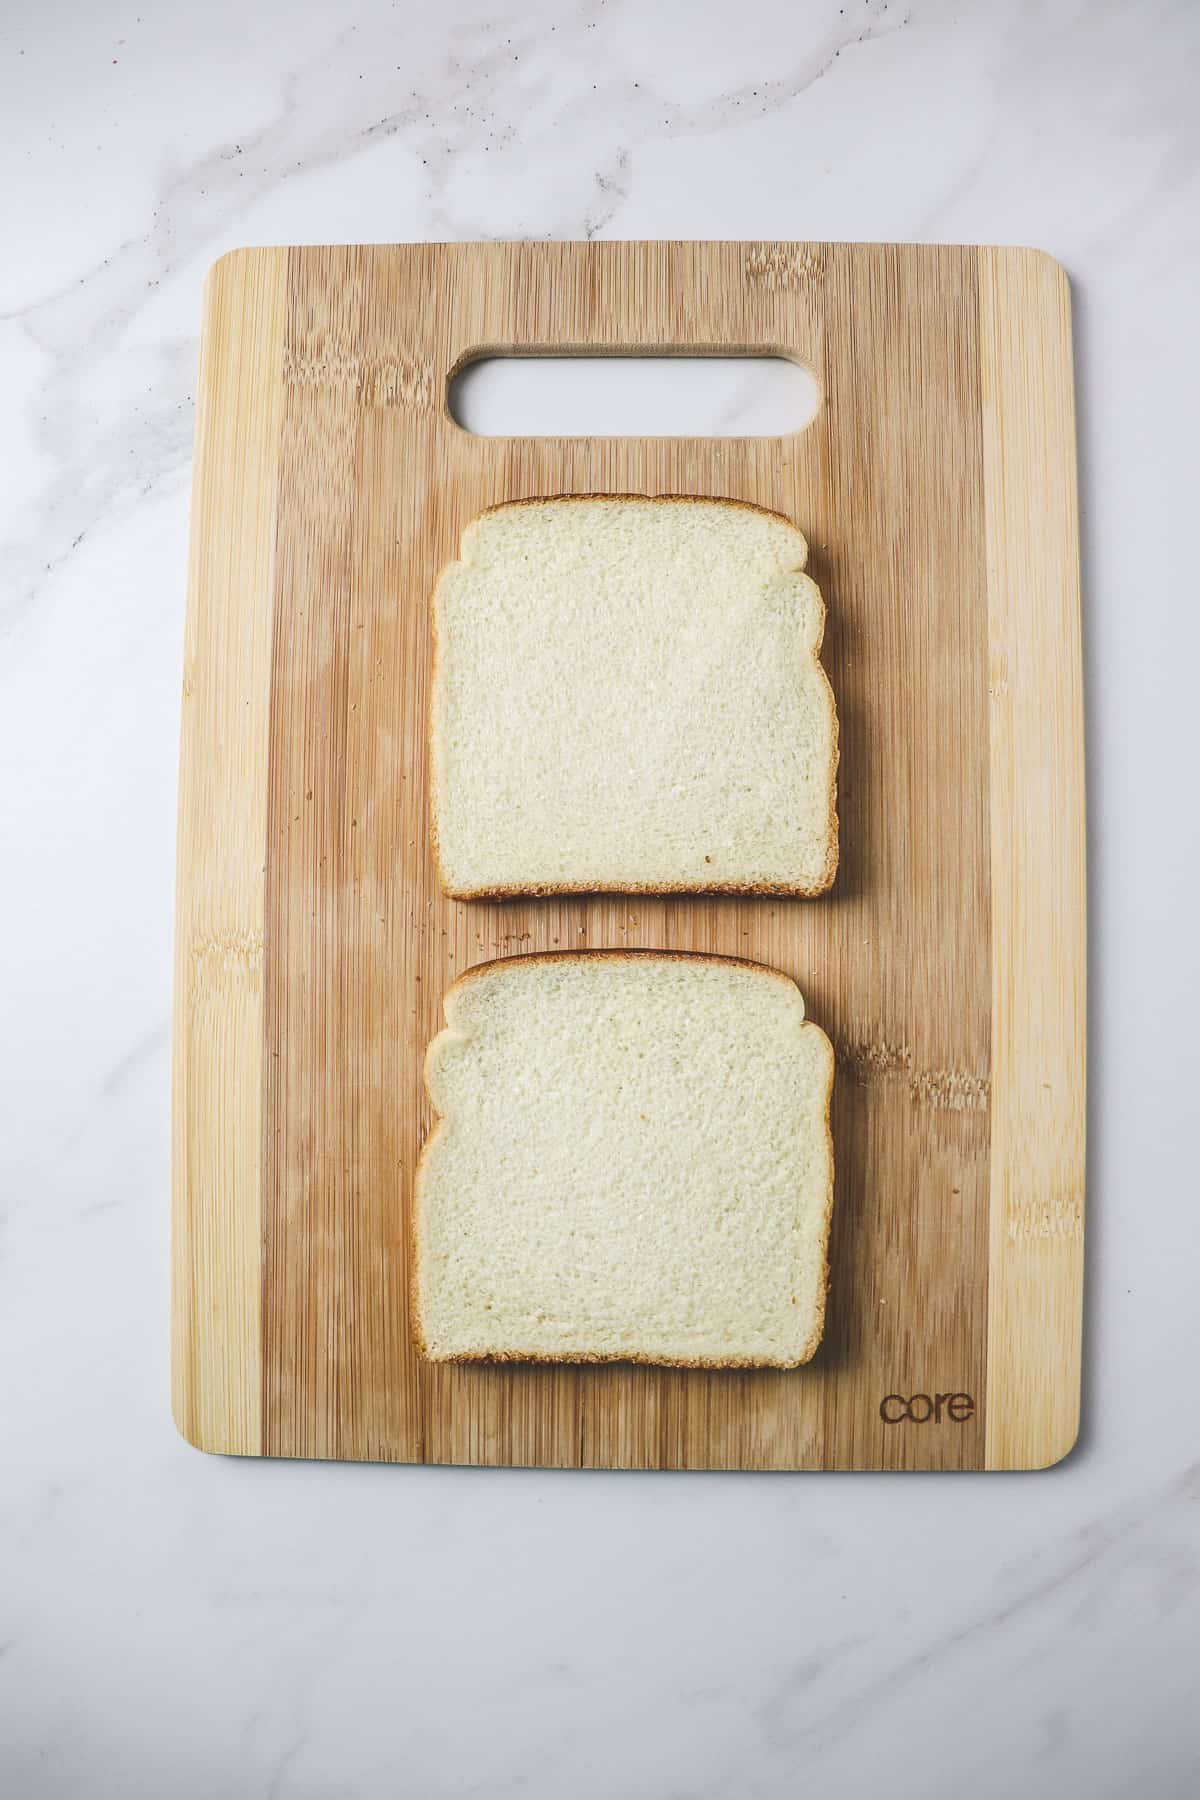 two pieces of white sandwich bread sitting on a wood cutting board